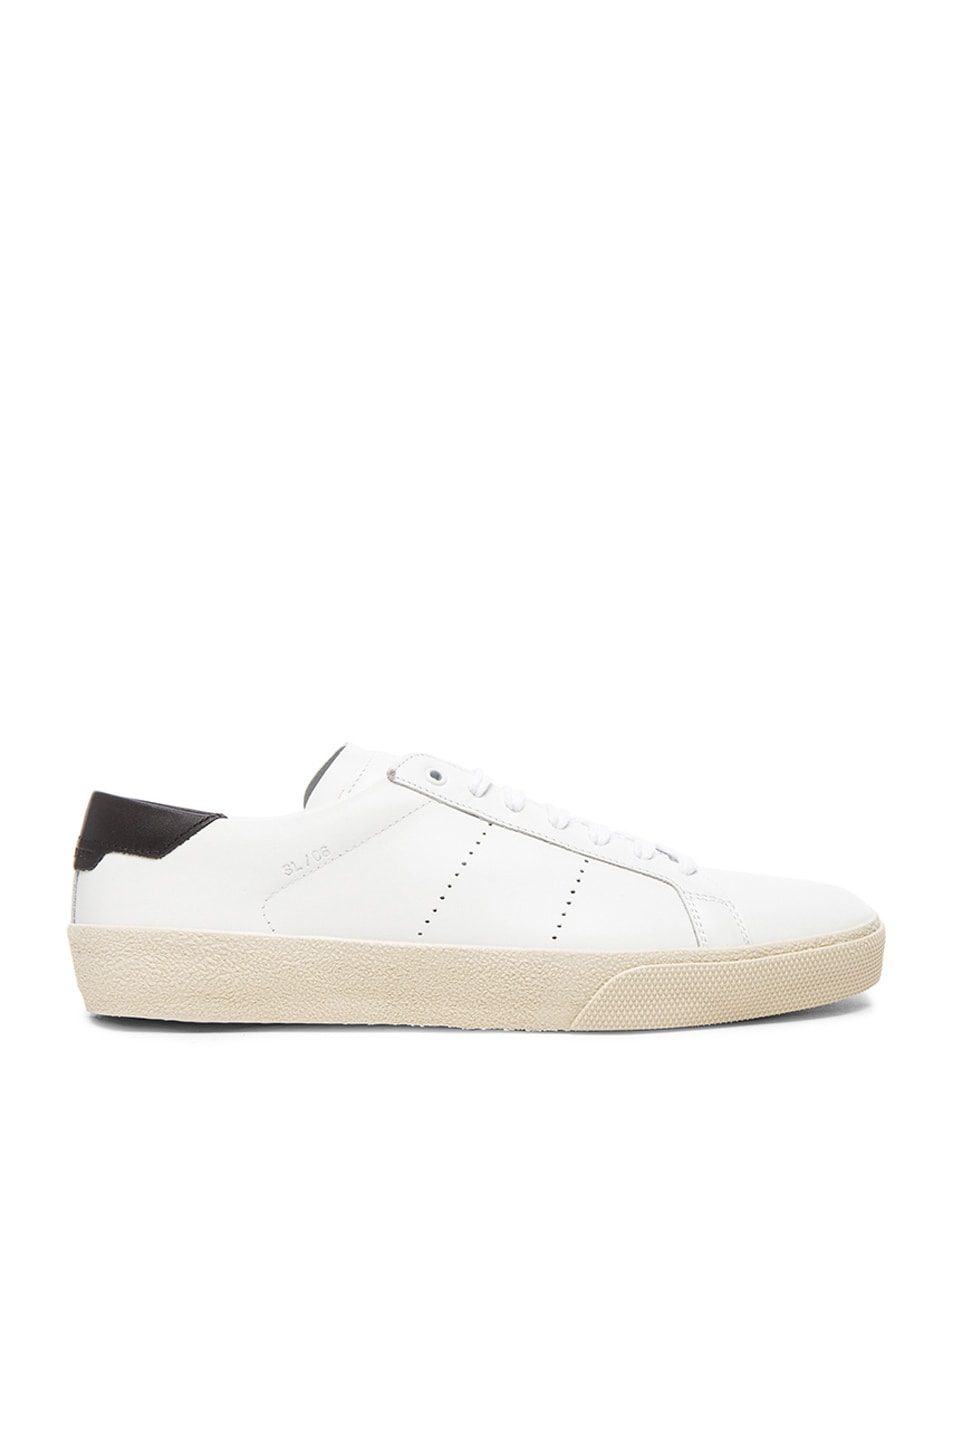 Image 1 of Saint Laurent Court Classic Sneakers in Black & White